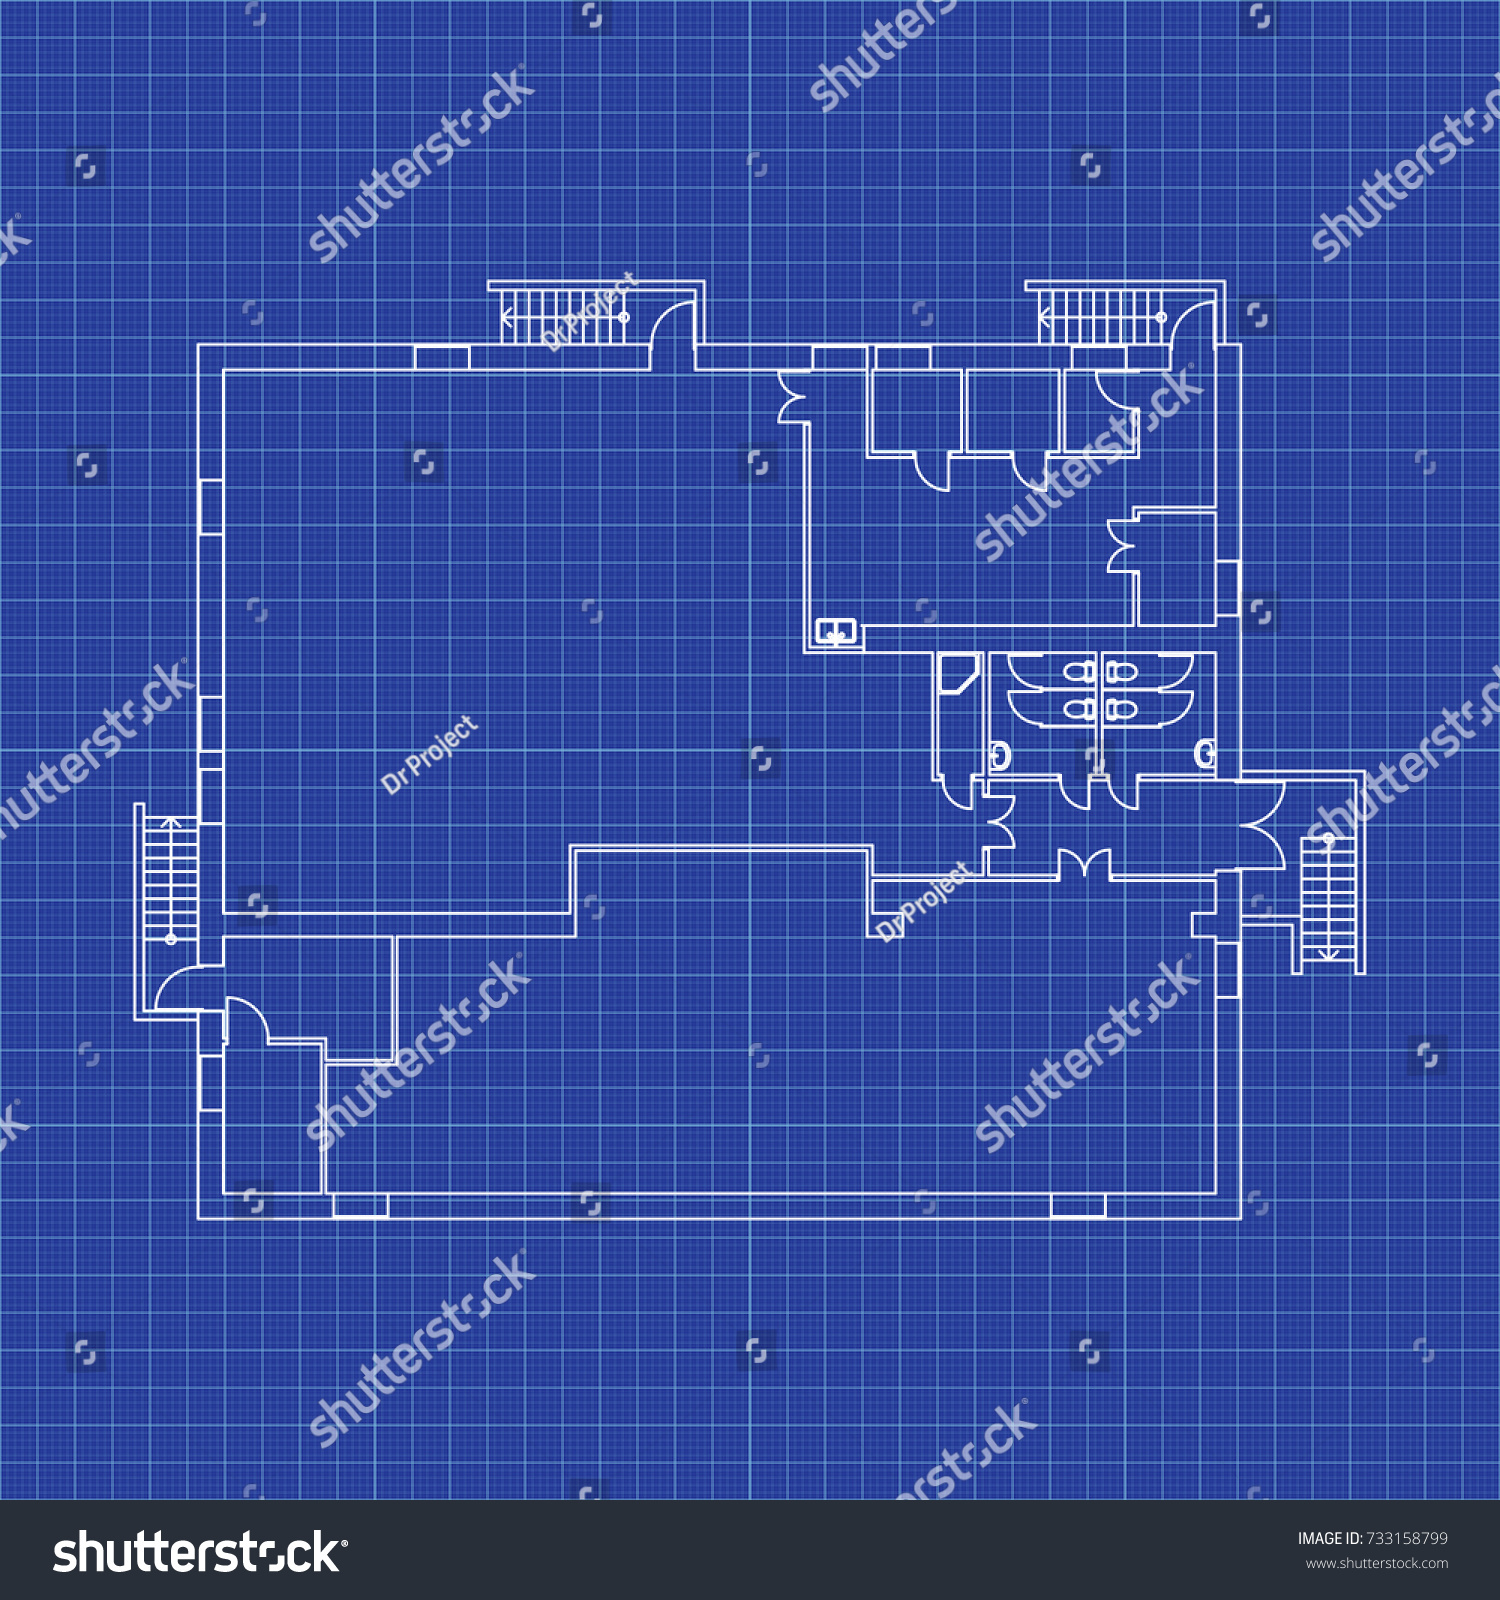 Cafe floor plan without furniture your vectores en stock 733158799 cafe floor plan without furniture for your design vector blueprint modern architectural background malvernweather Gallery